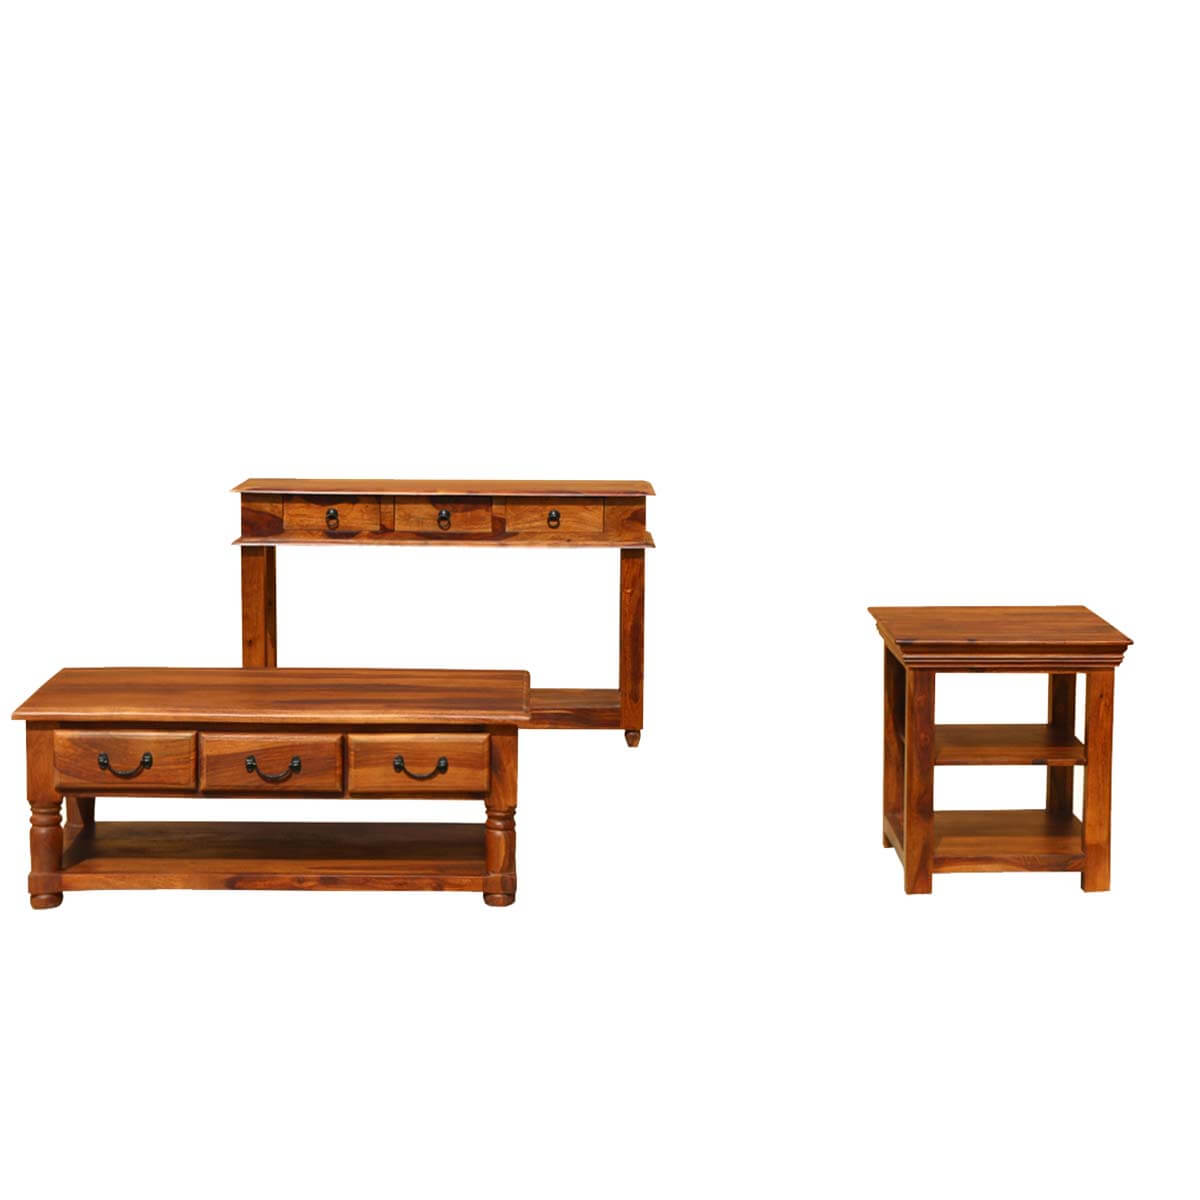 Early American Solid Wood Console Coffee & Accent Table